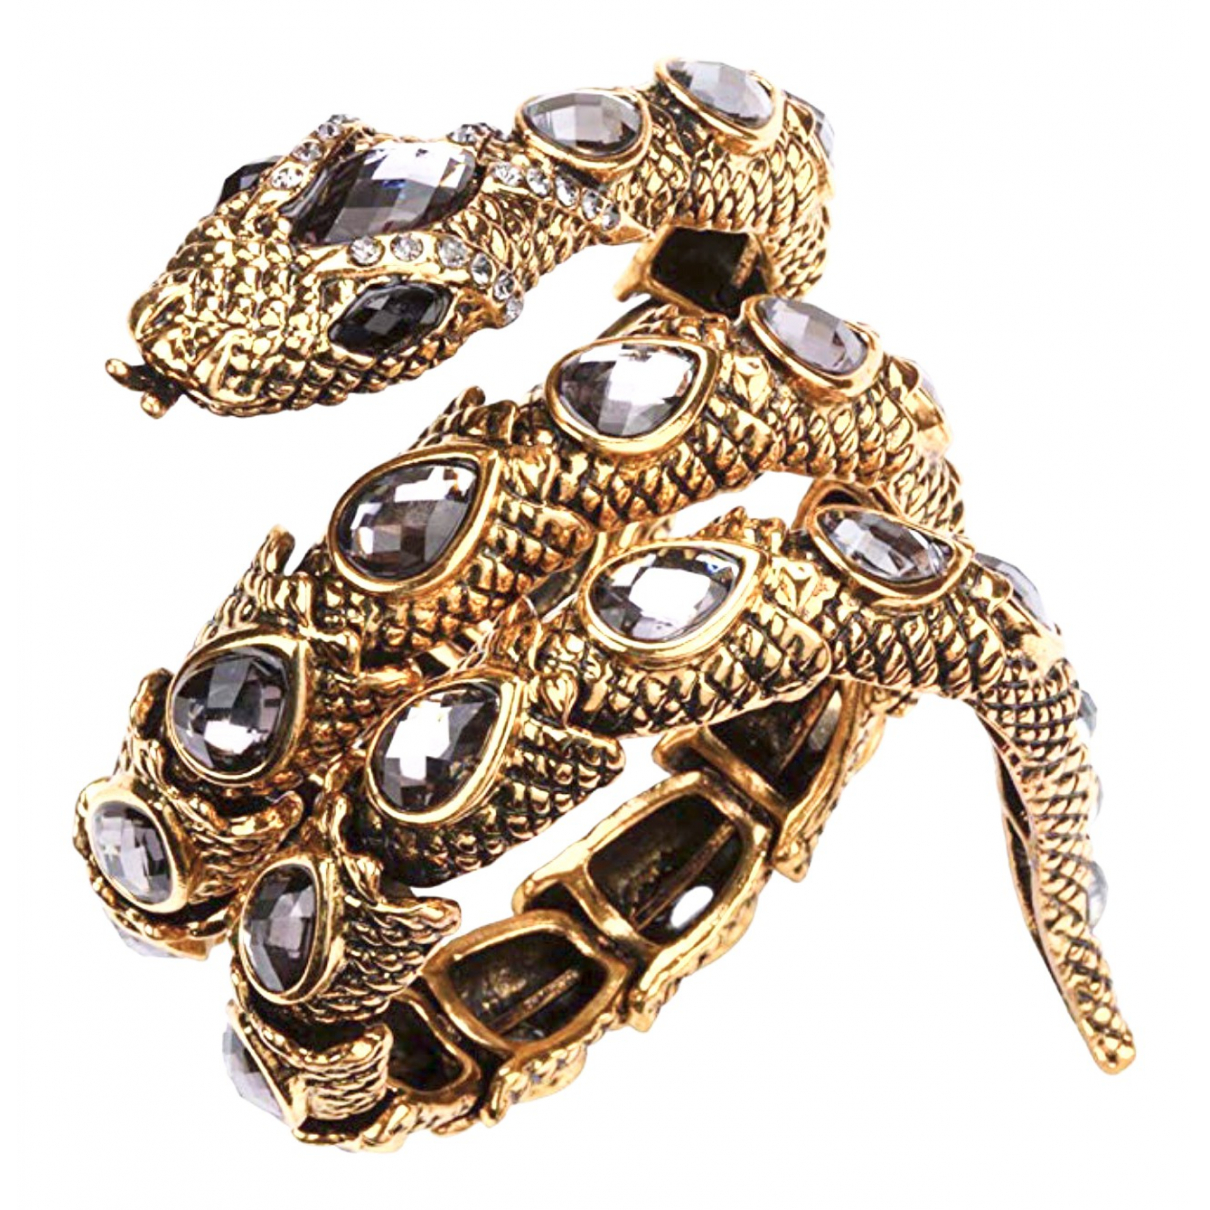 Valentino Garavani \N Gold Metal bracelet for Women \N